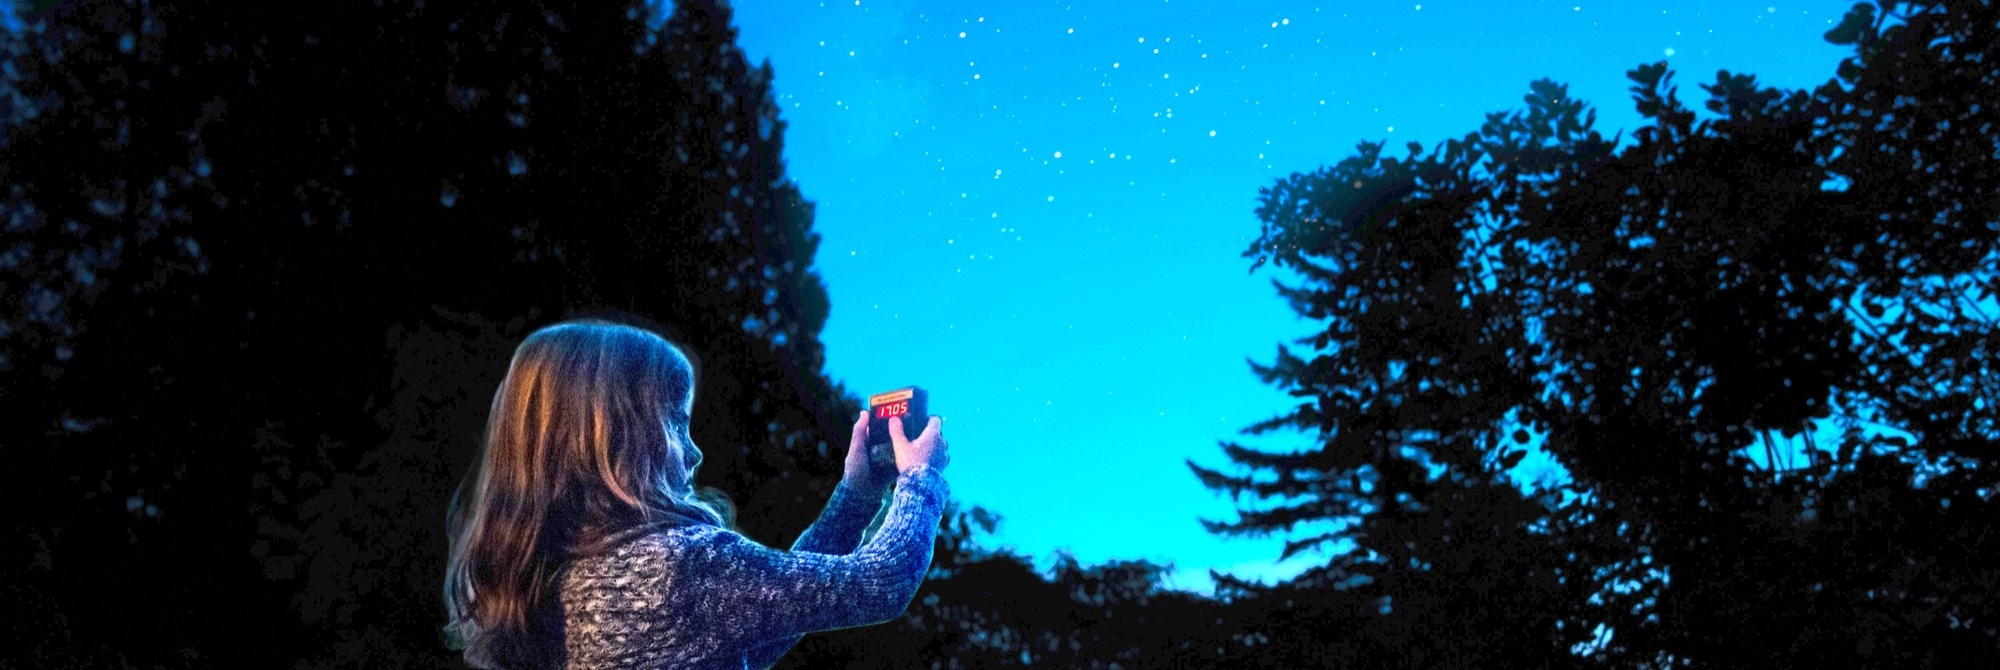 a girl holding up a device at night with dark trees and stars in the background